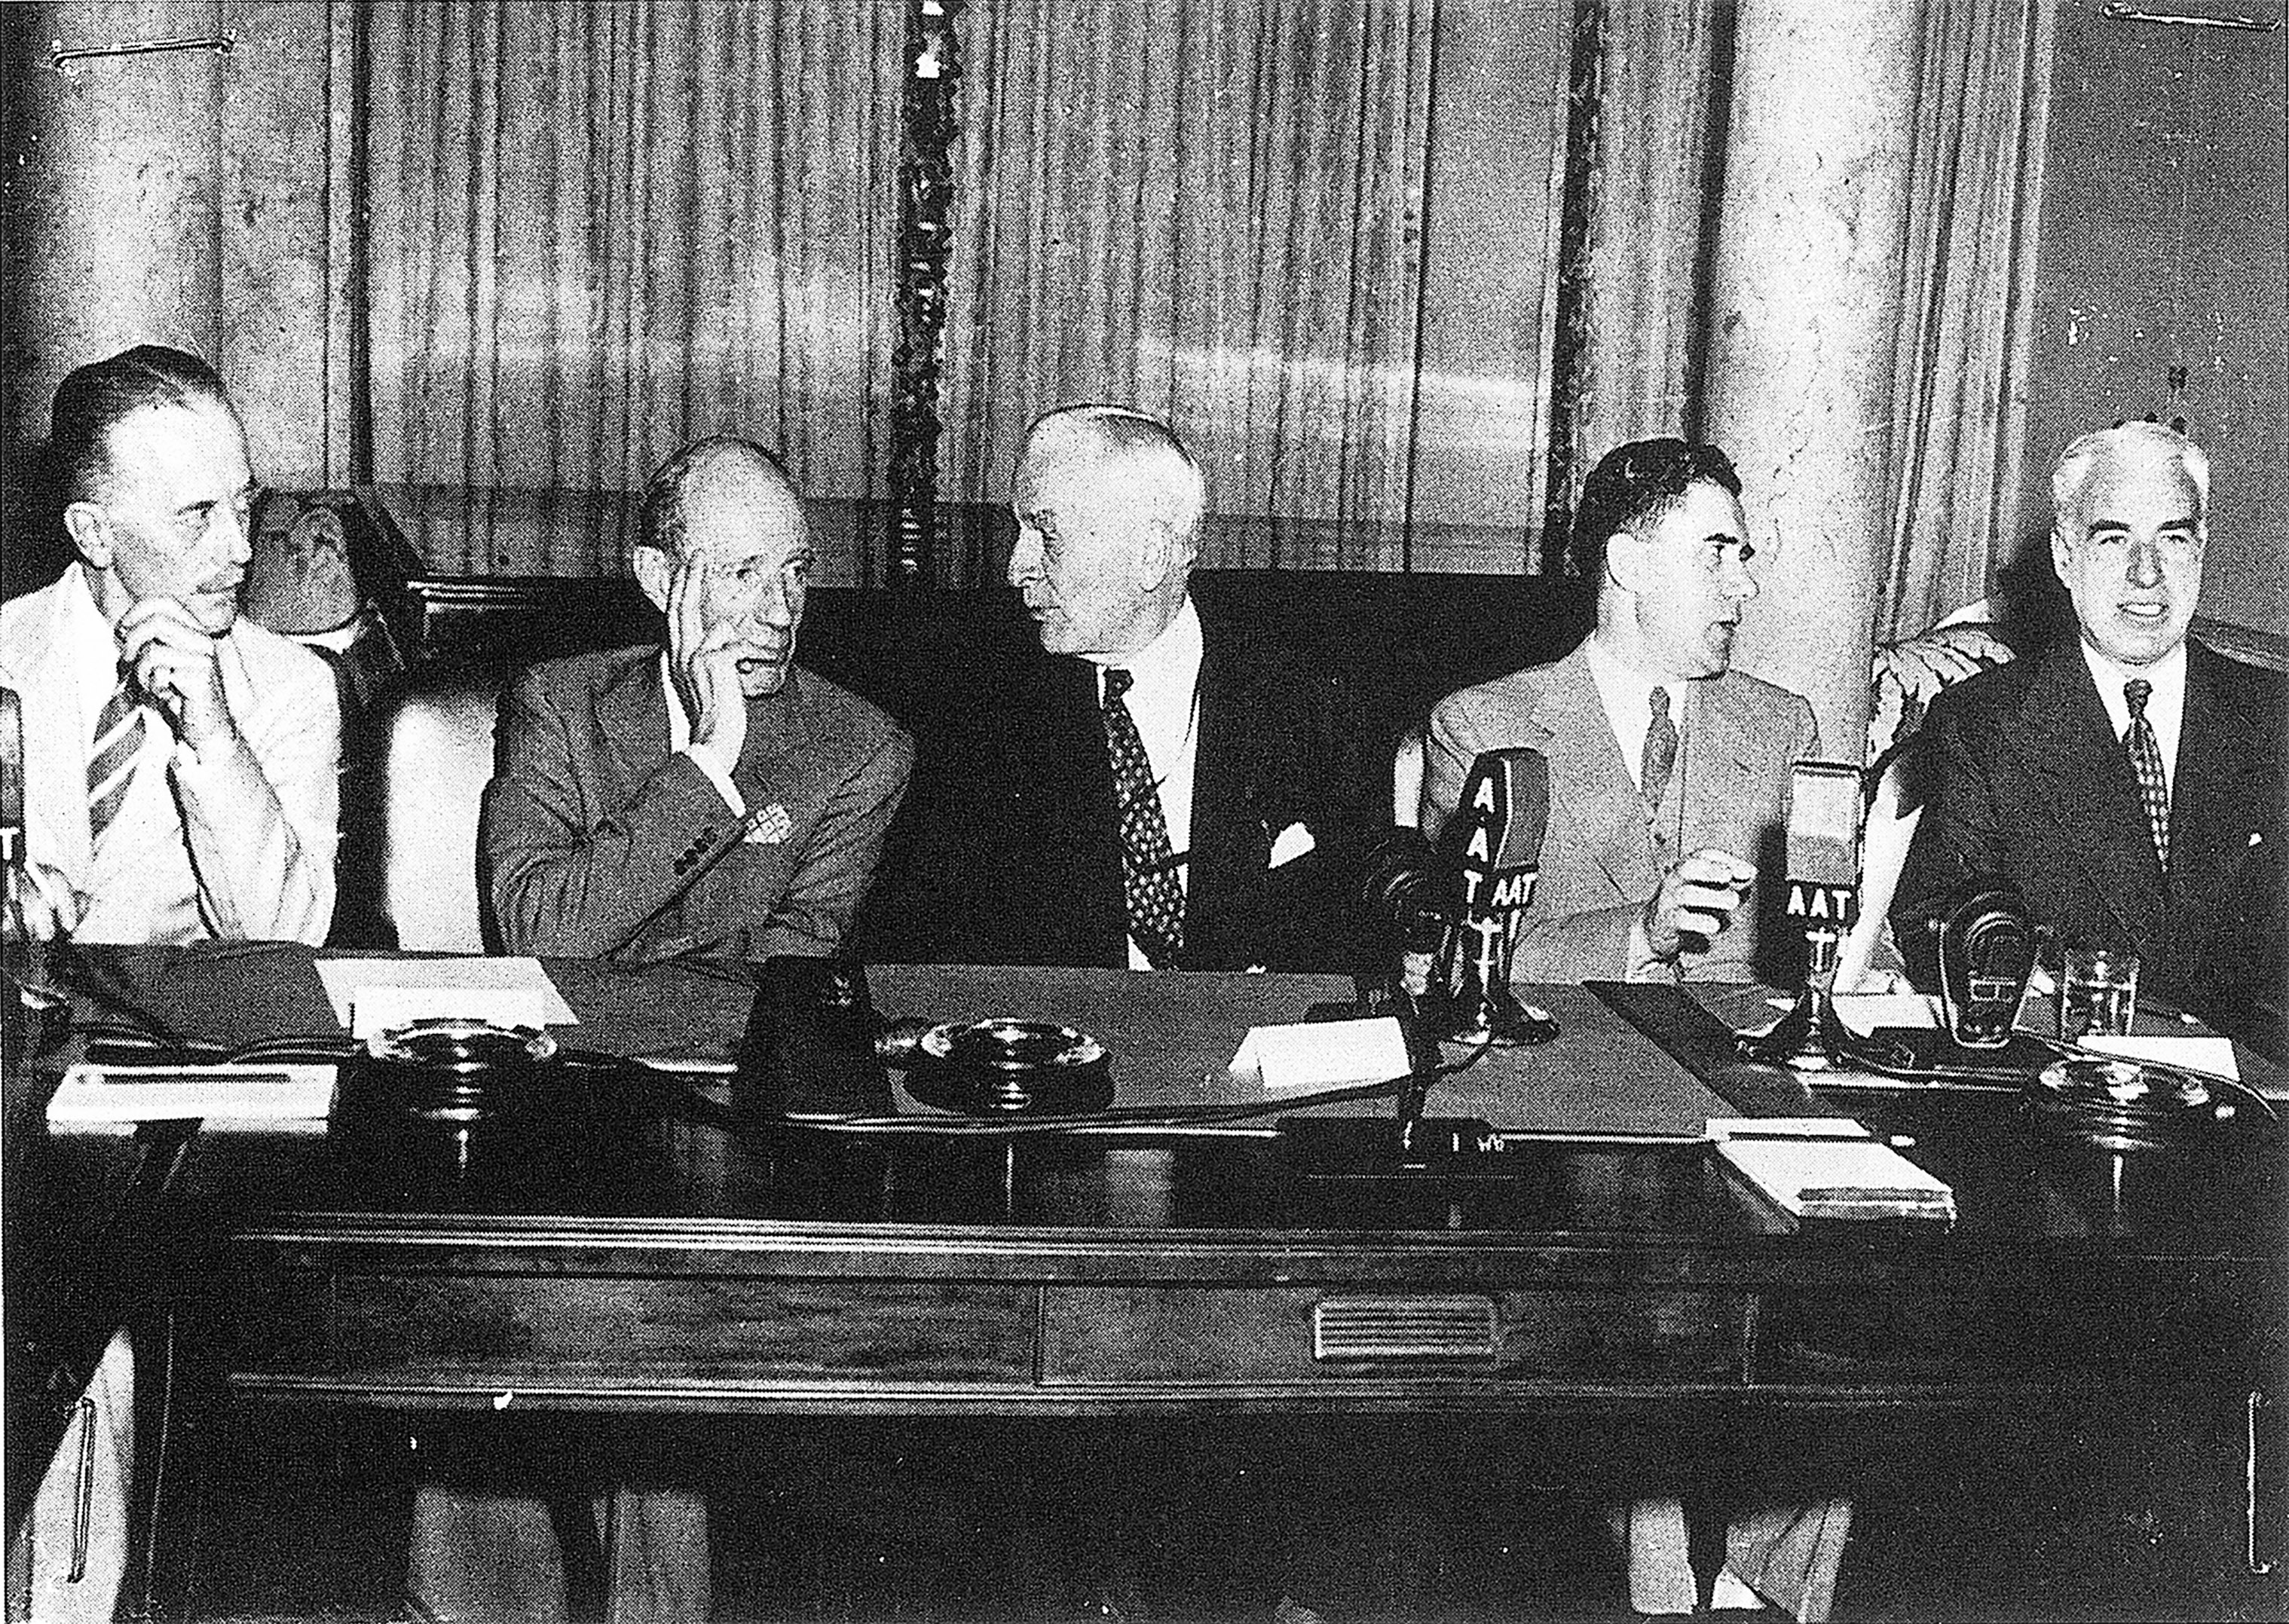 Delegation leaders at the opening session of the Dumbarton Oaks Conversations, 21 August 1944